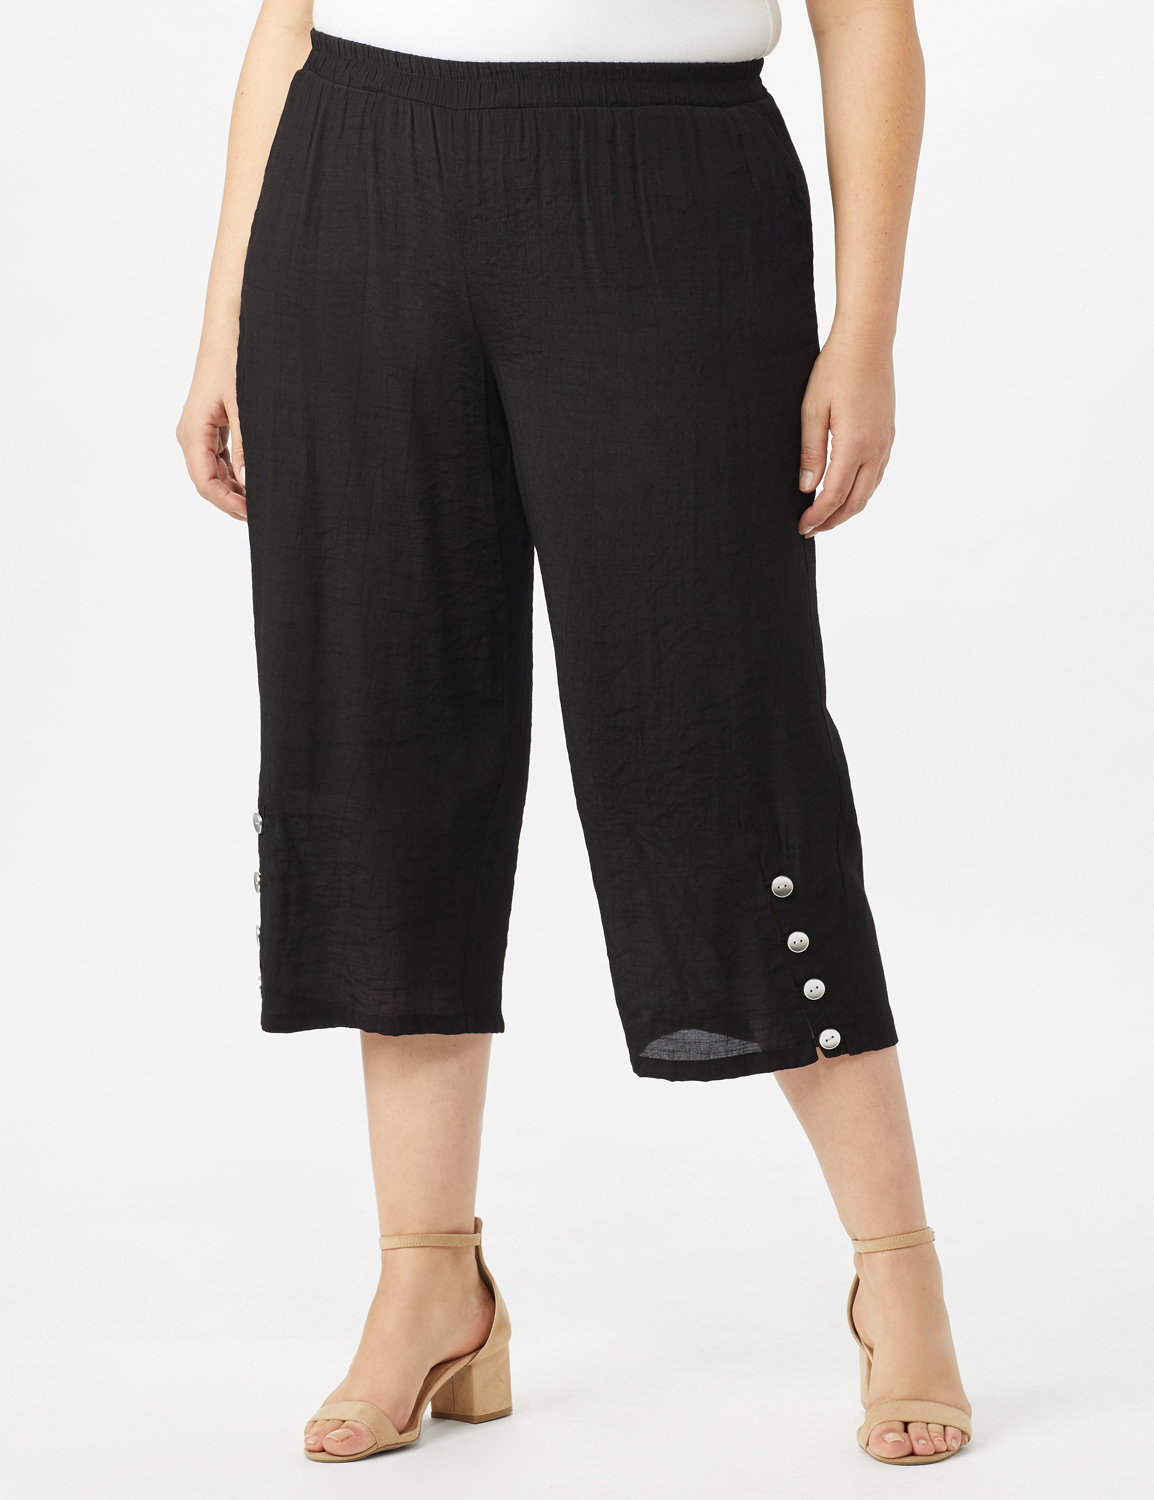 Pull on Wide Leg Crop Pants with Button Hem Detail -Black - Front